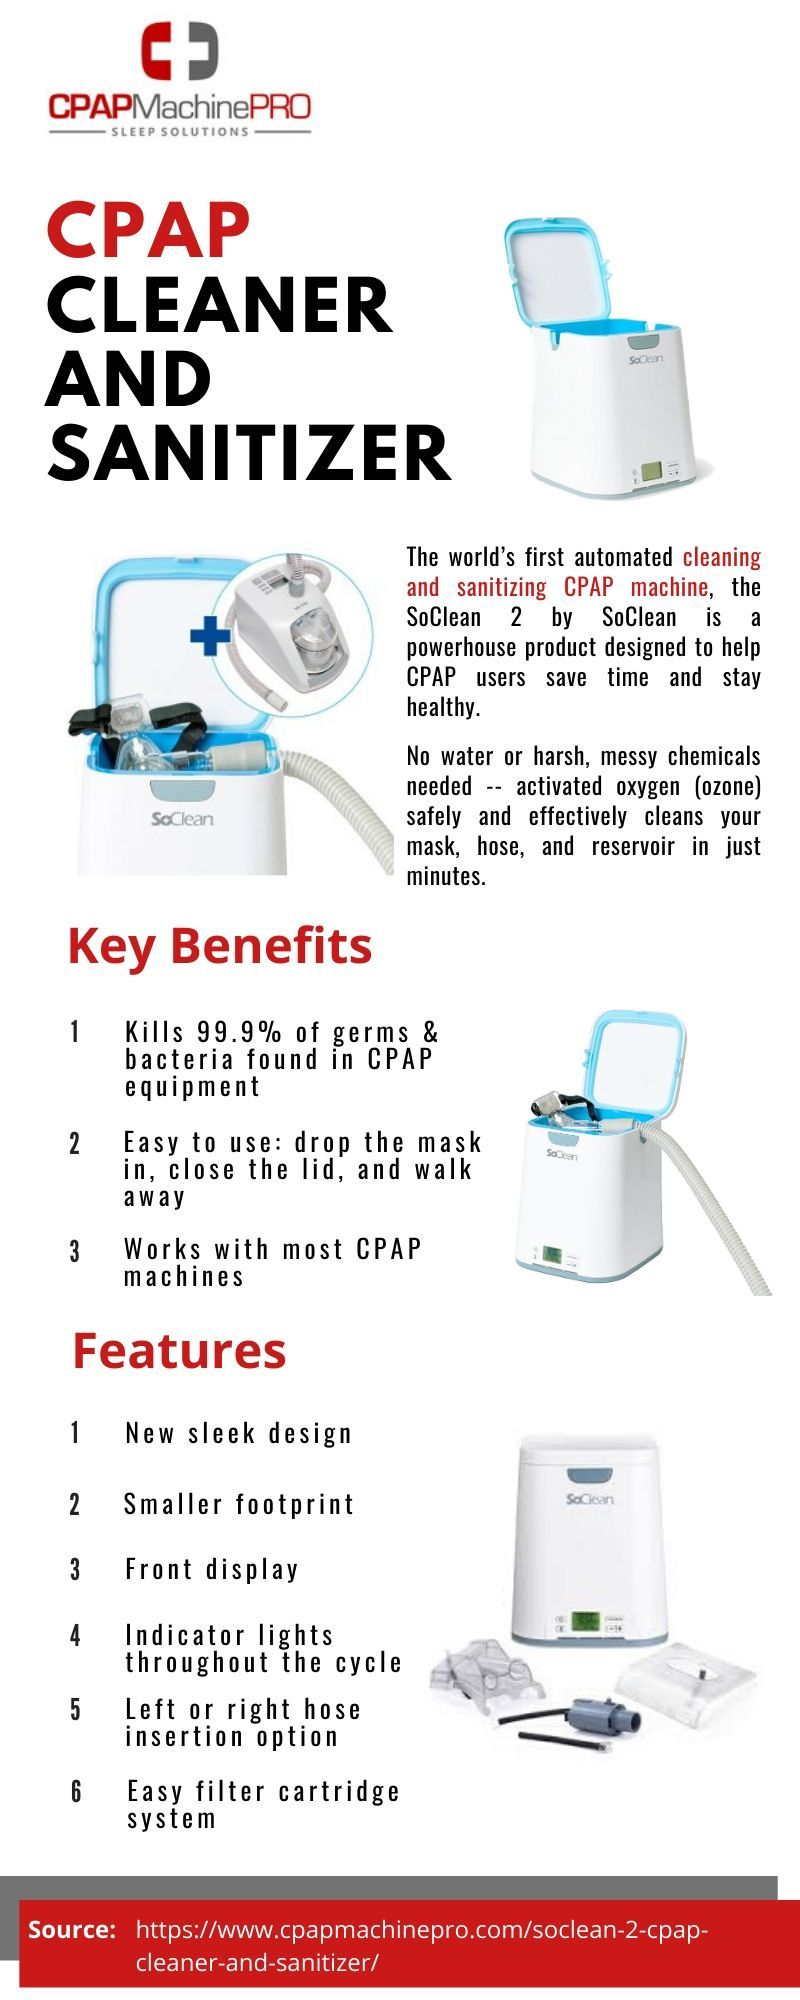 Soclean 2 Cpap Cleaner And Sanitizer Cpap Cleaning Cpap Sanitizer